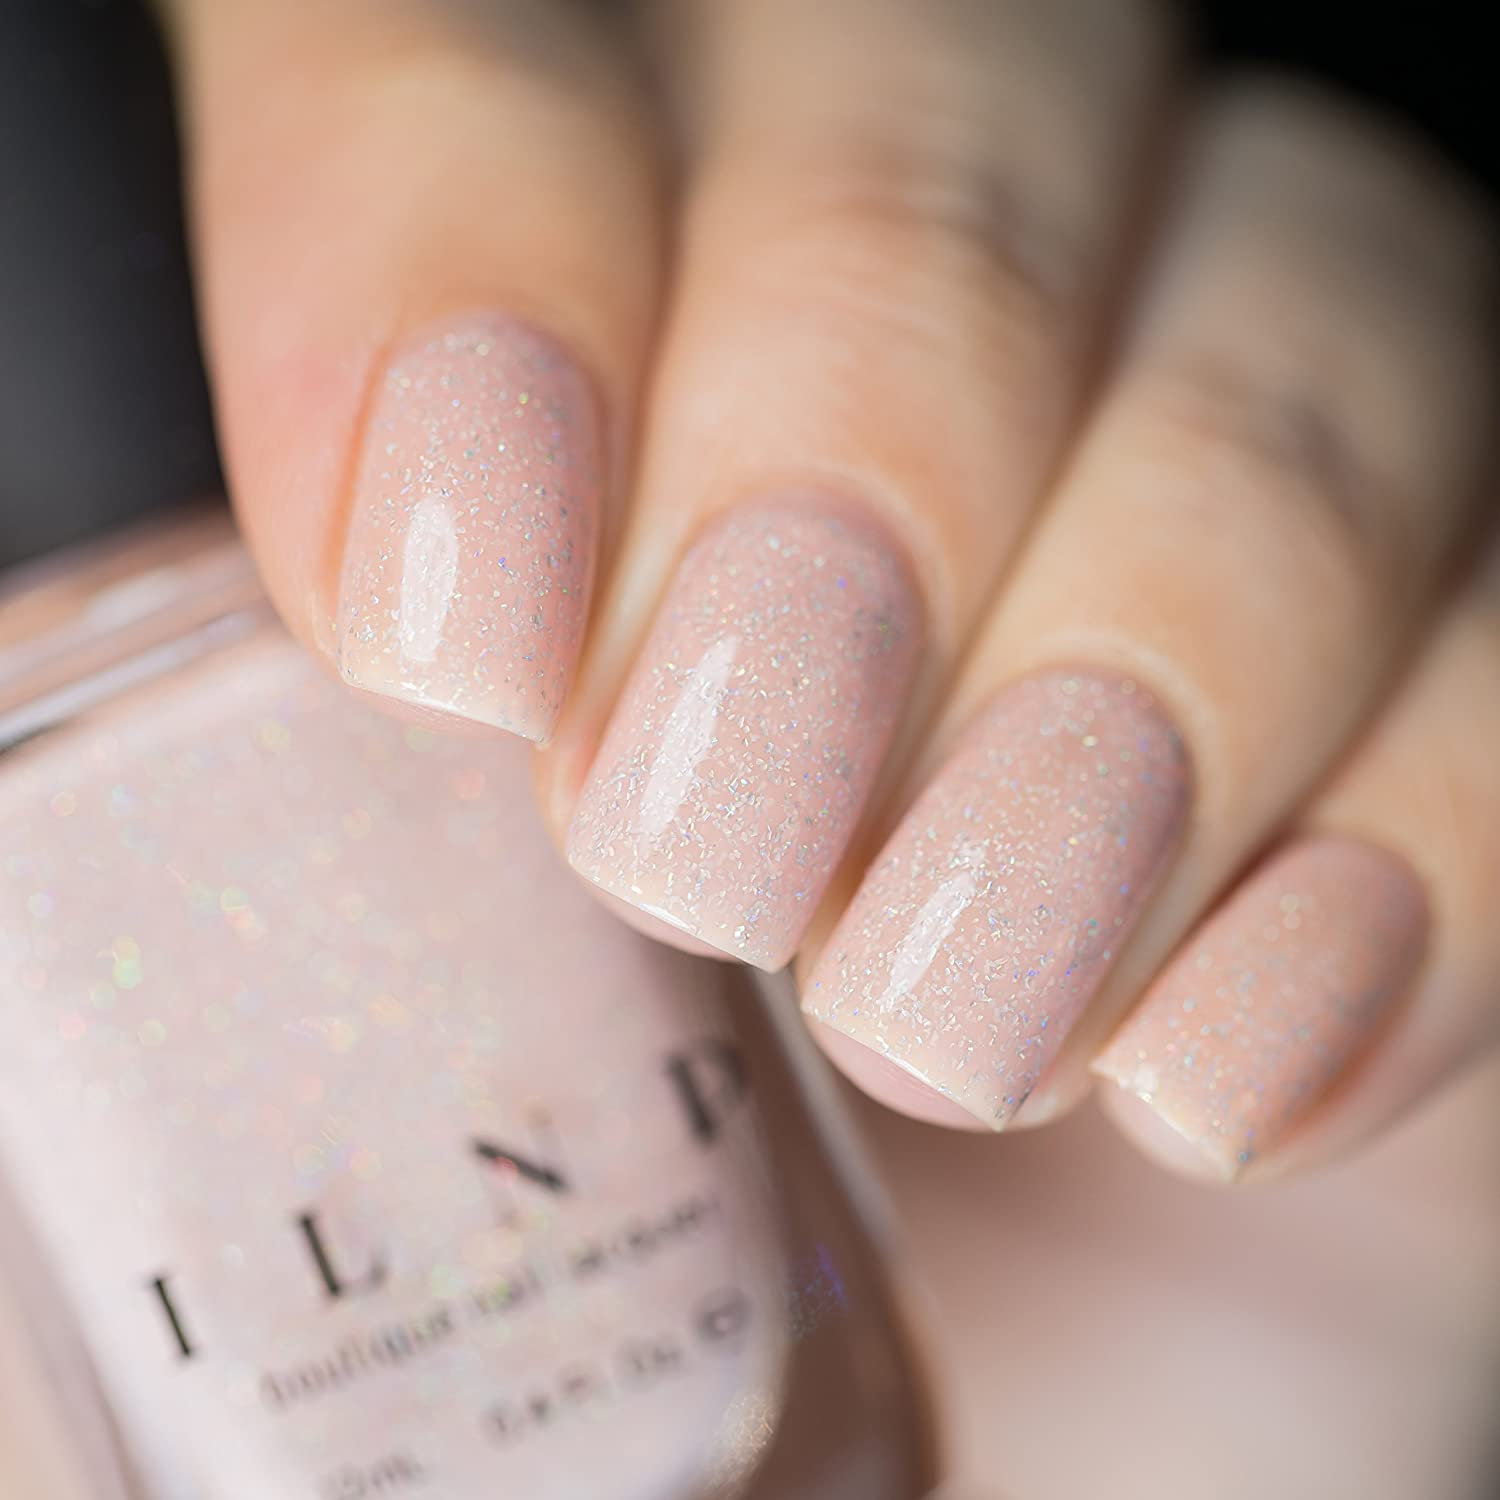 Amazon.com : ILNP Birthday Suit - Cashmere Pink Holographic Nail ...